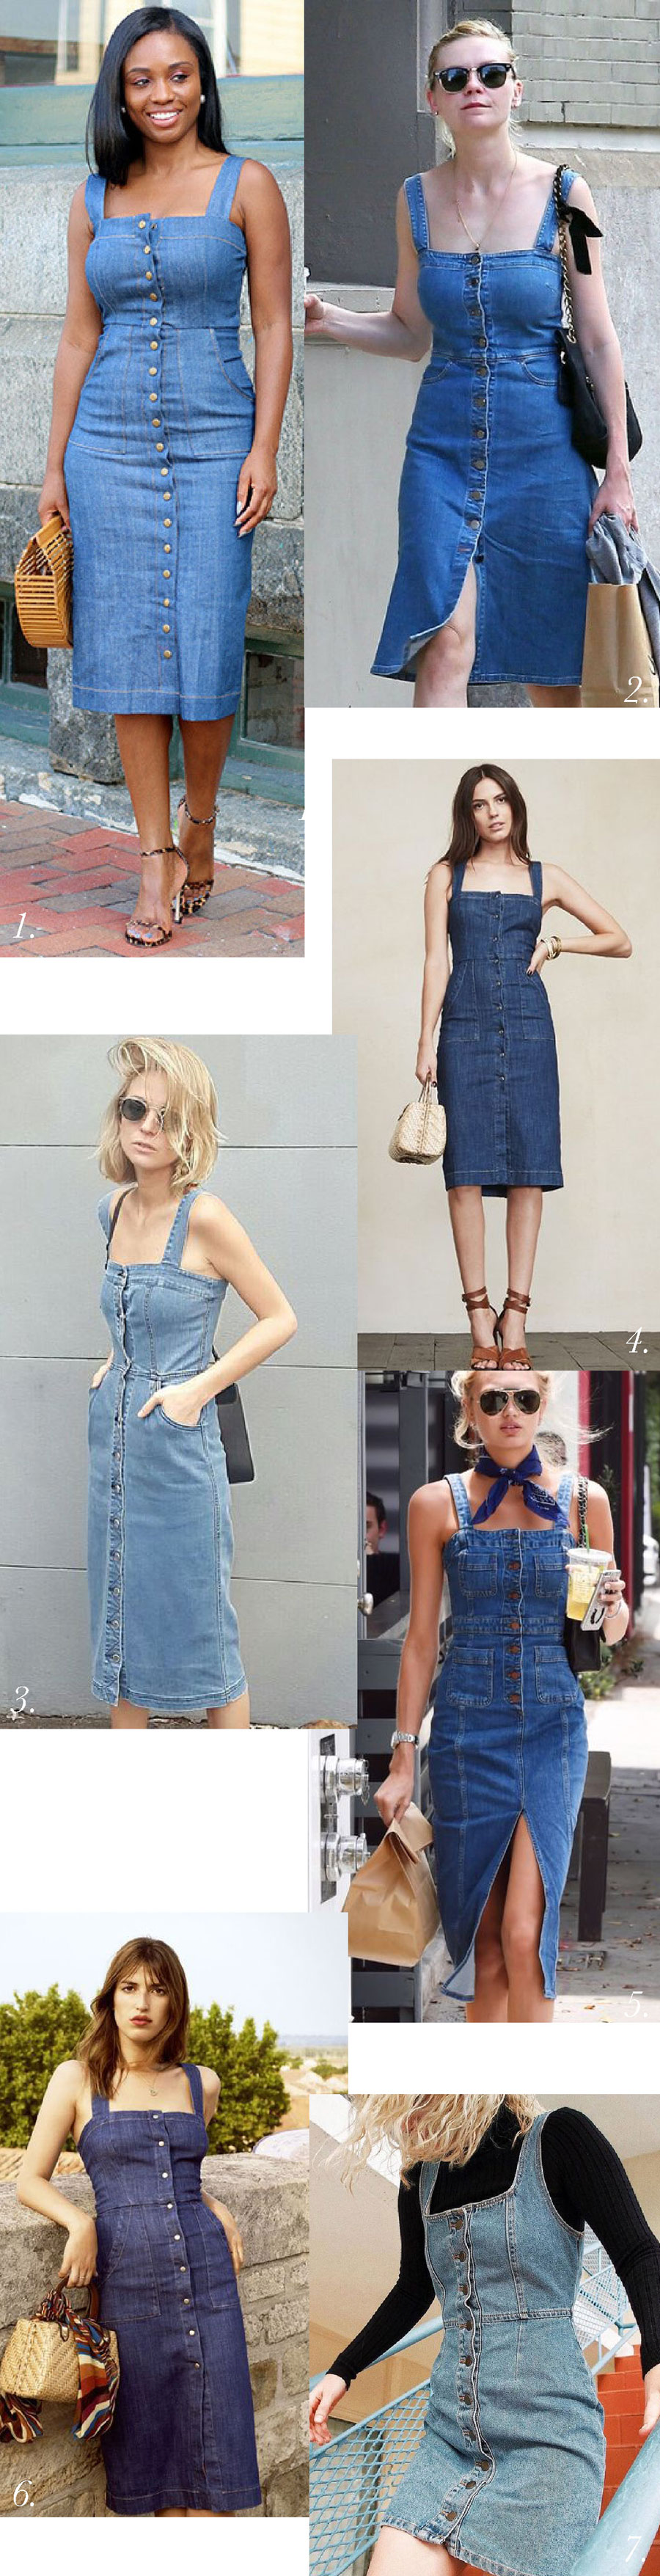 Denim dress outfit inspiration // Fiona Sundress pattern by Closet Case Patterns